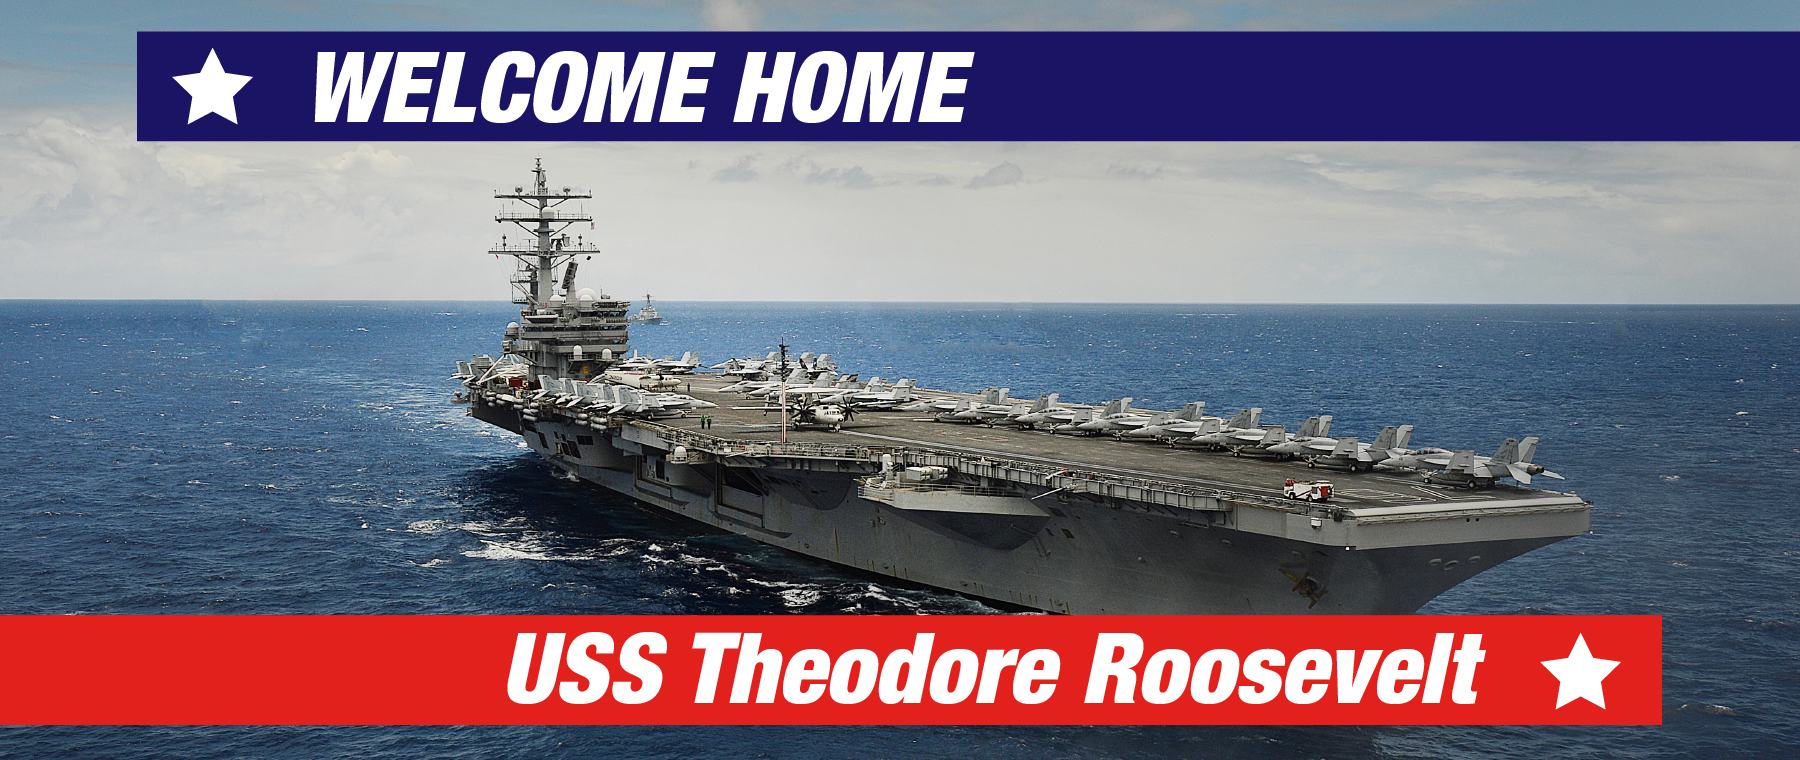 11855 – JUL21 – WHAP – Welcome Home USS Theodore Roosevelt – Webslides_1800x760 – VW